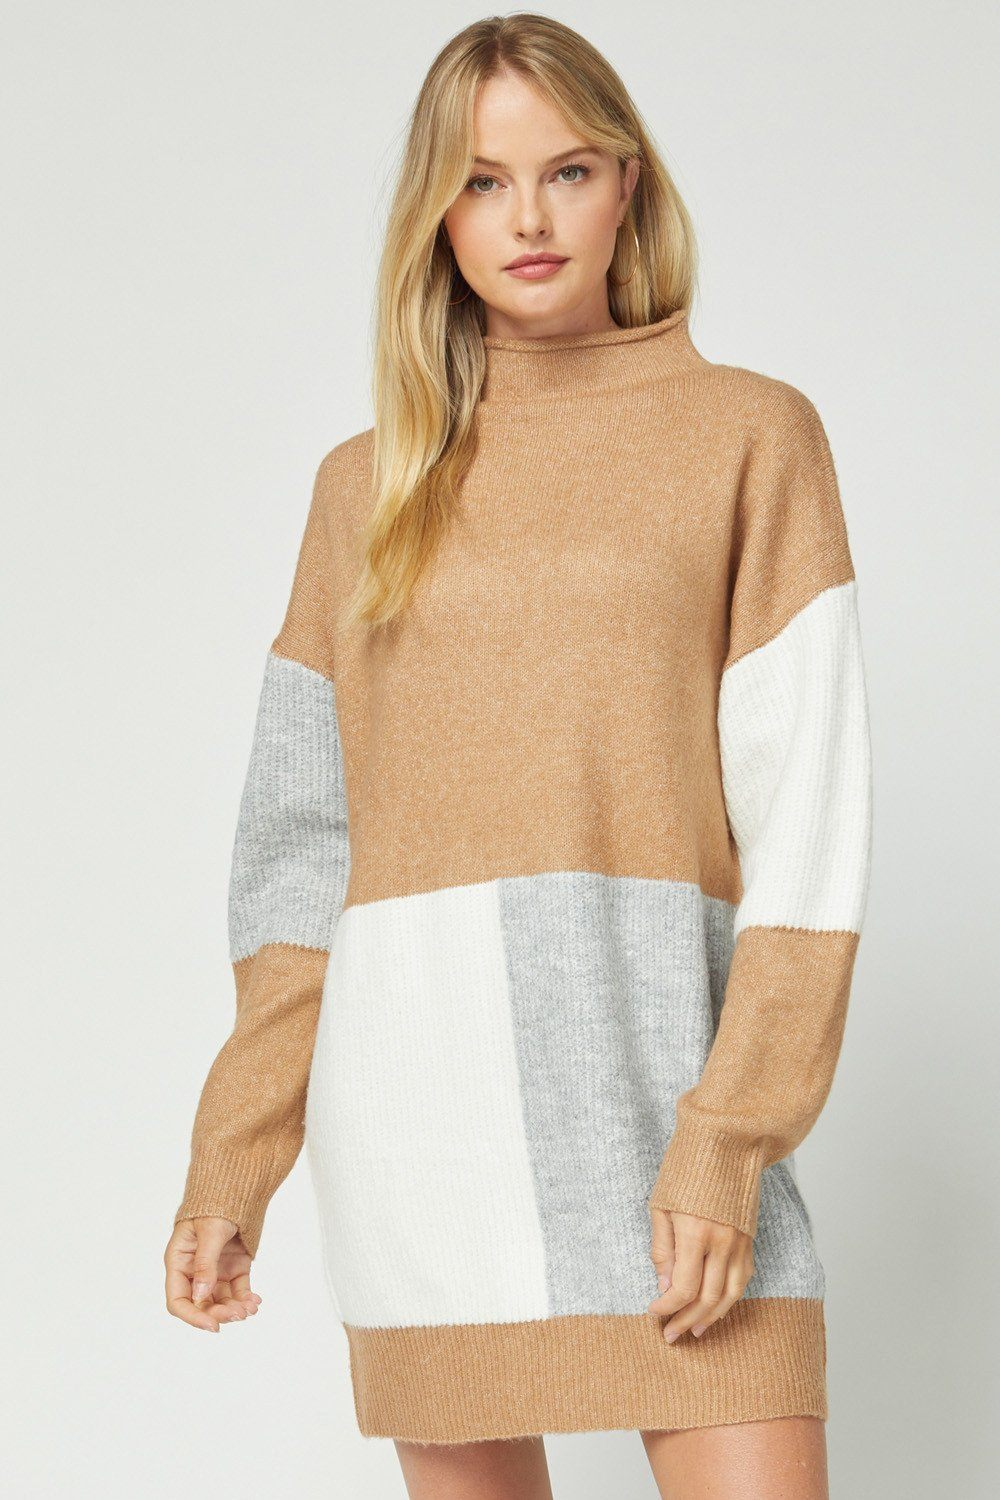 Camel Color Block Sweater Dress - Caroline Hill